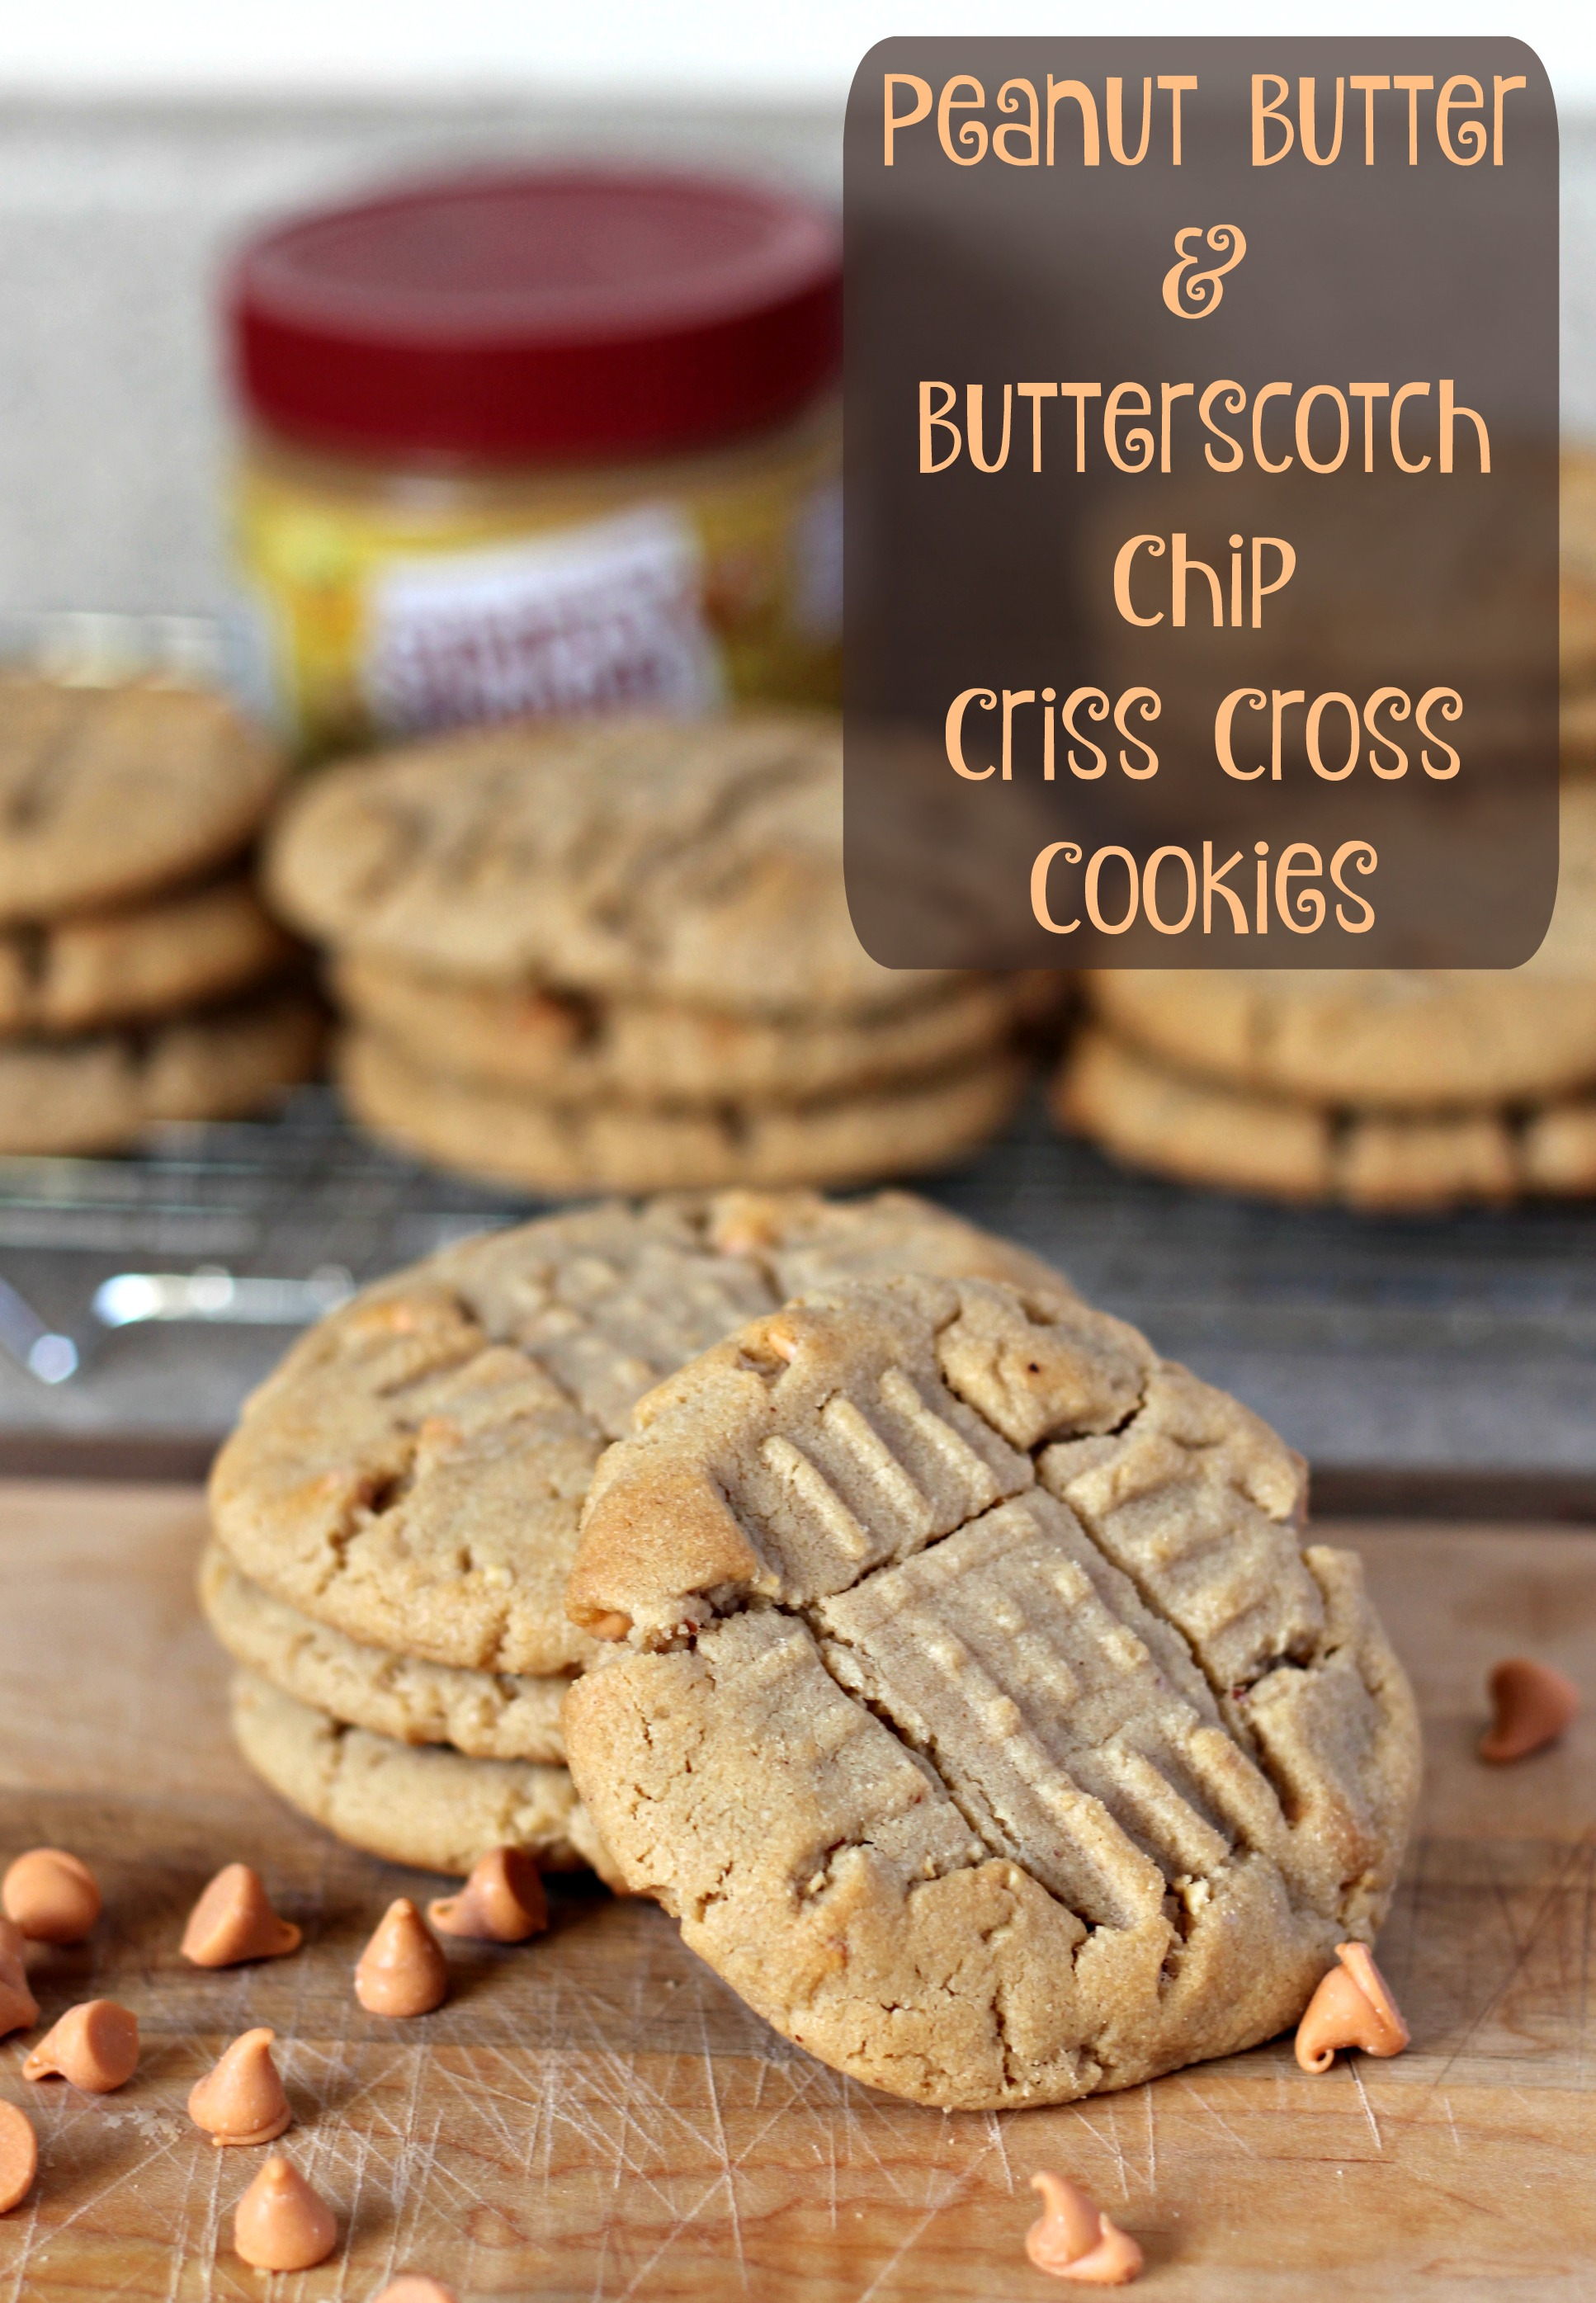 Peanut Butter and Butterscotch Chip Criss Cross Cookies